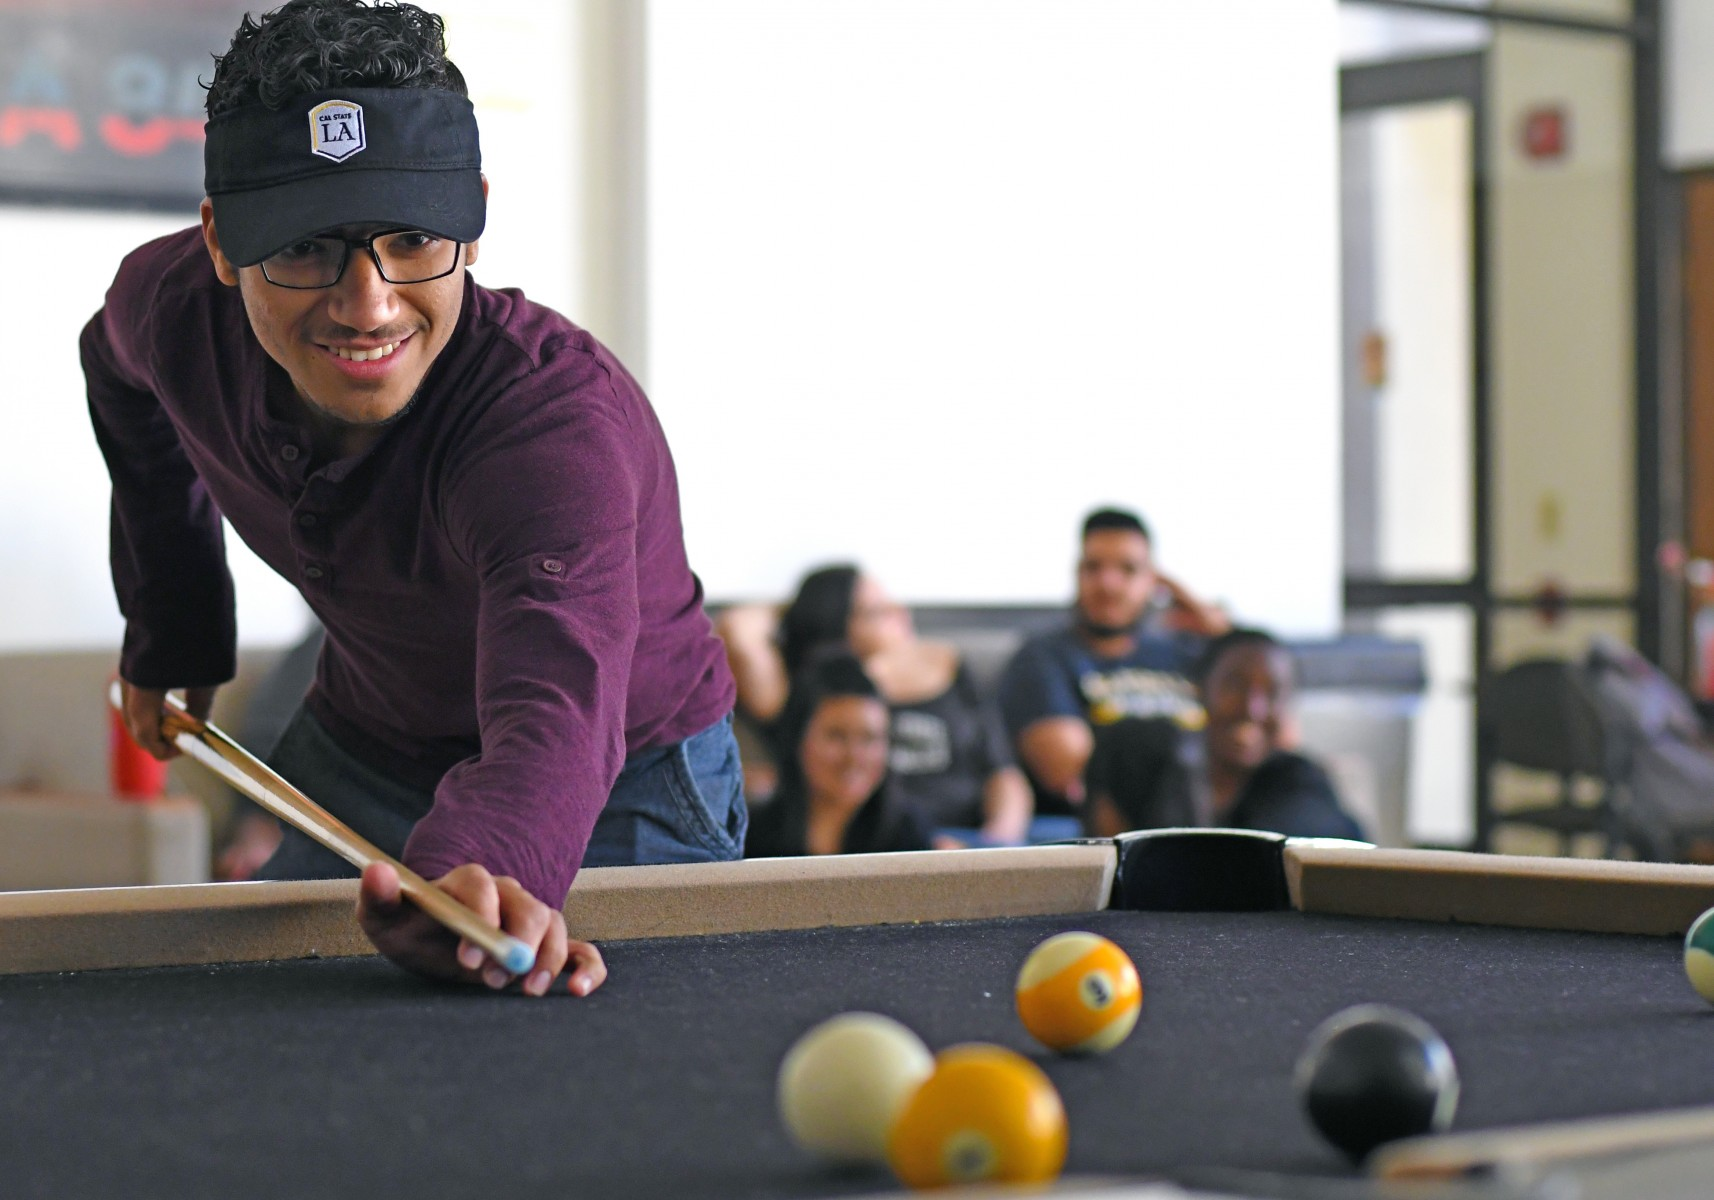 Student playing pool.